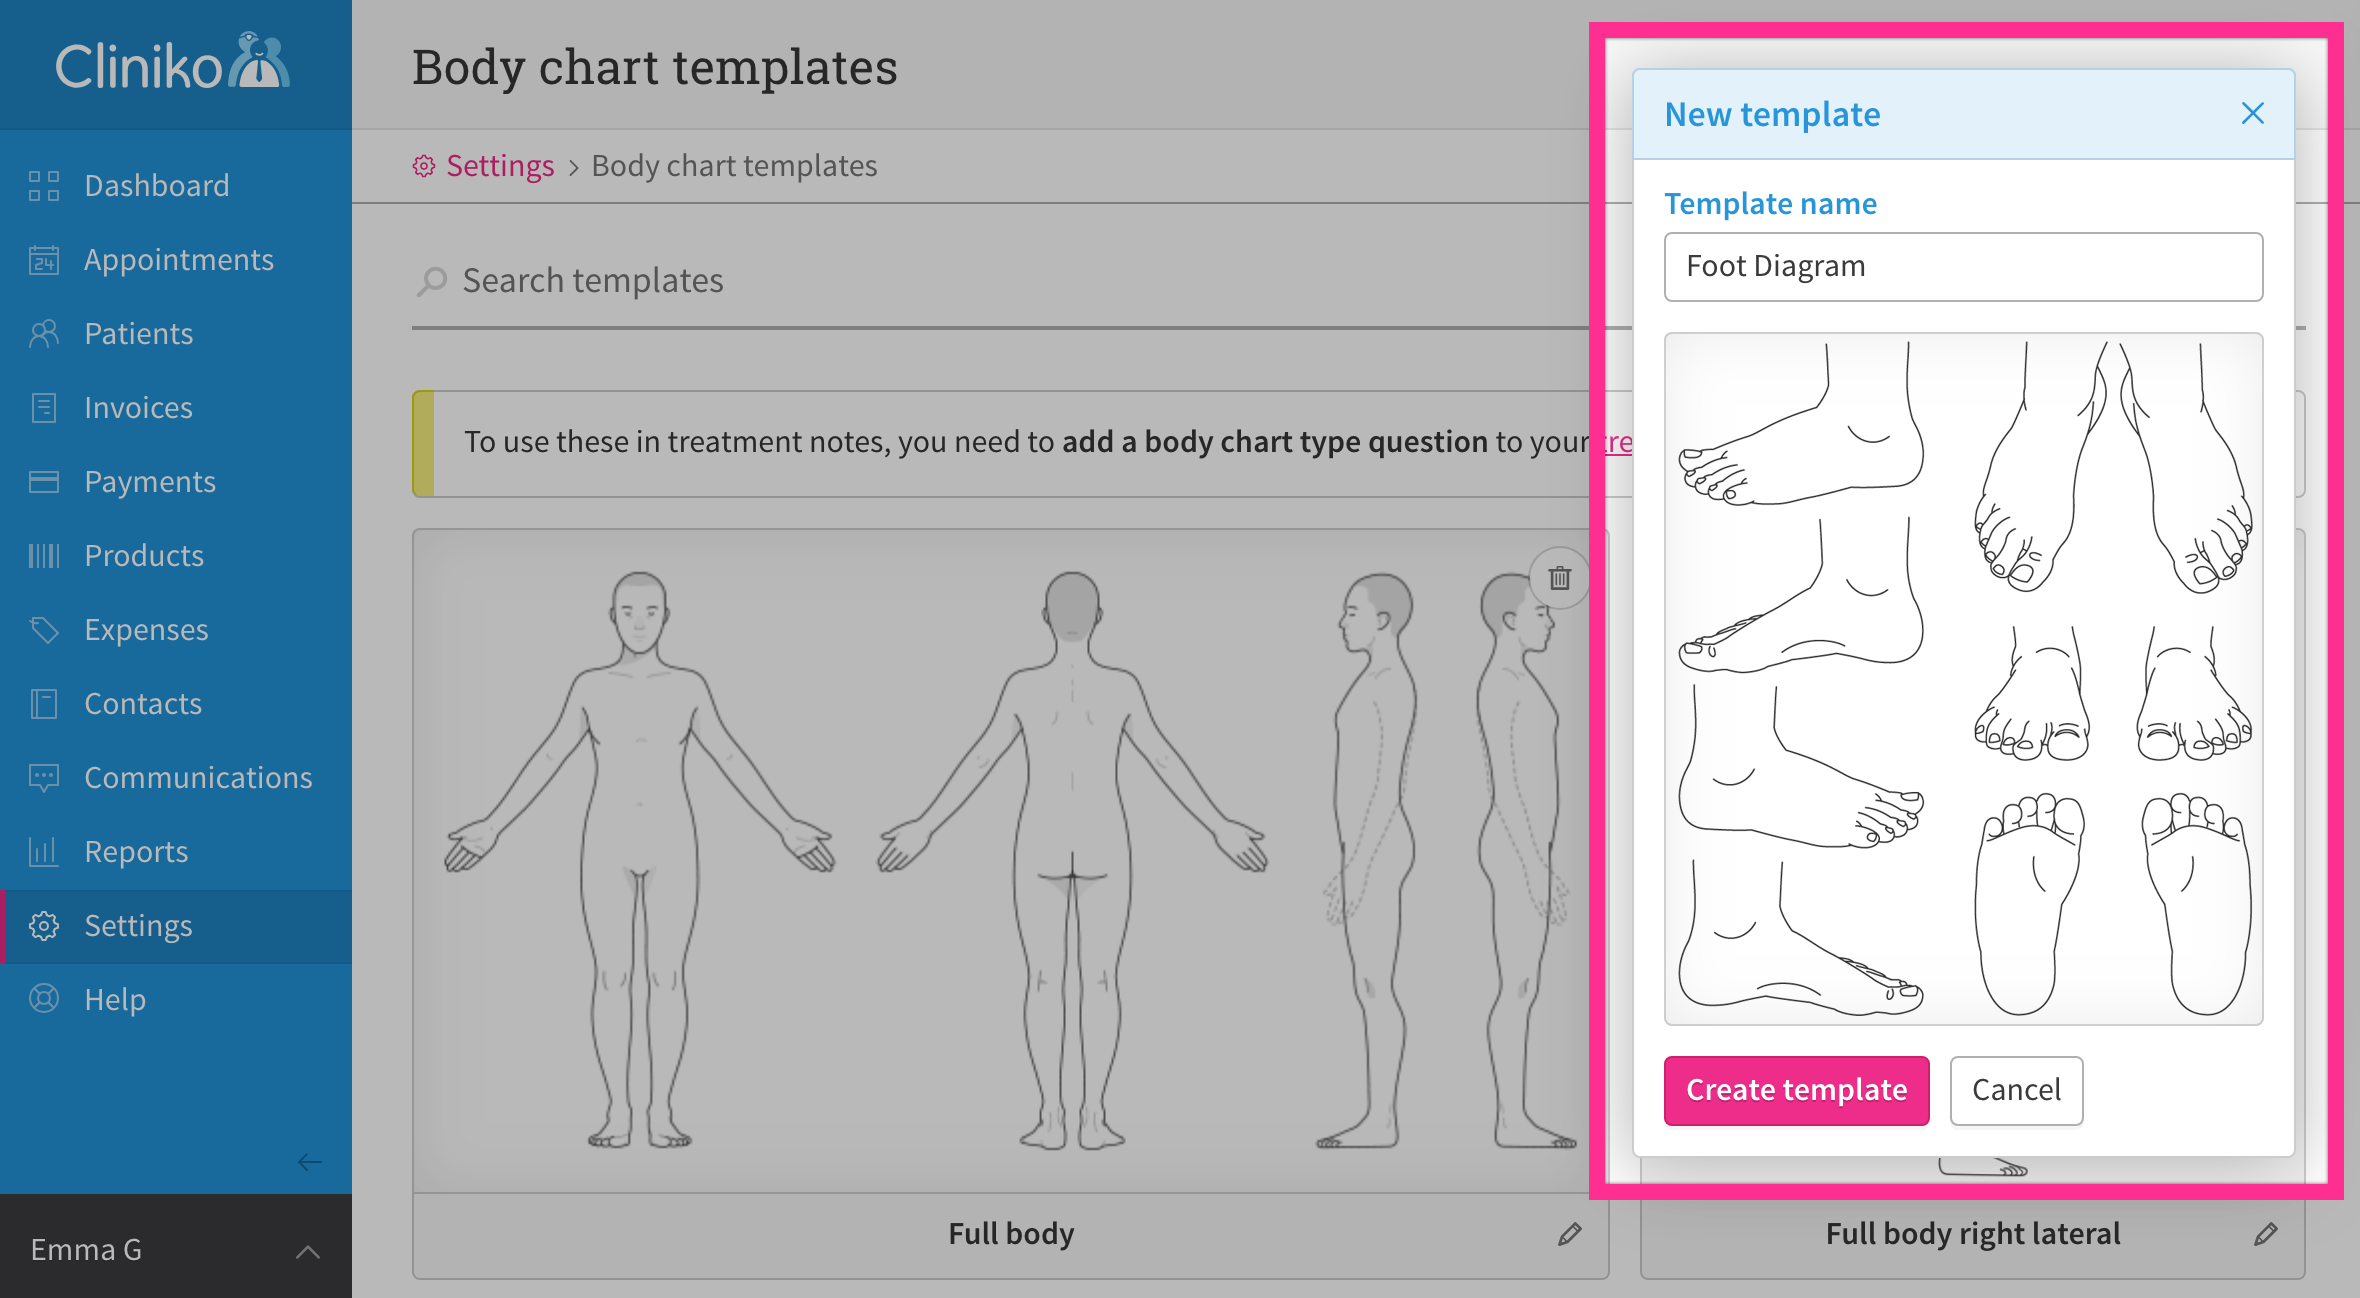 Upload Your Own Body Chart Templates   Cliniko Help